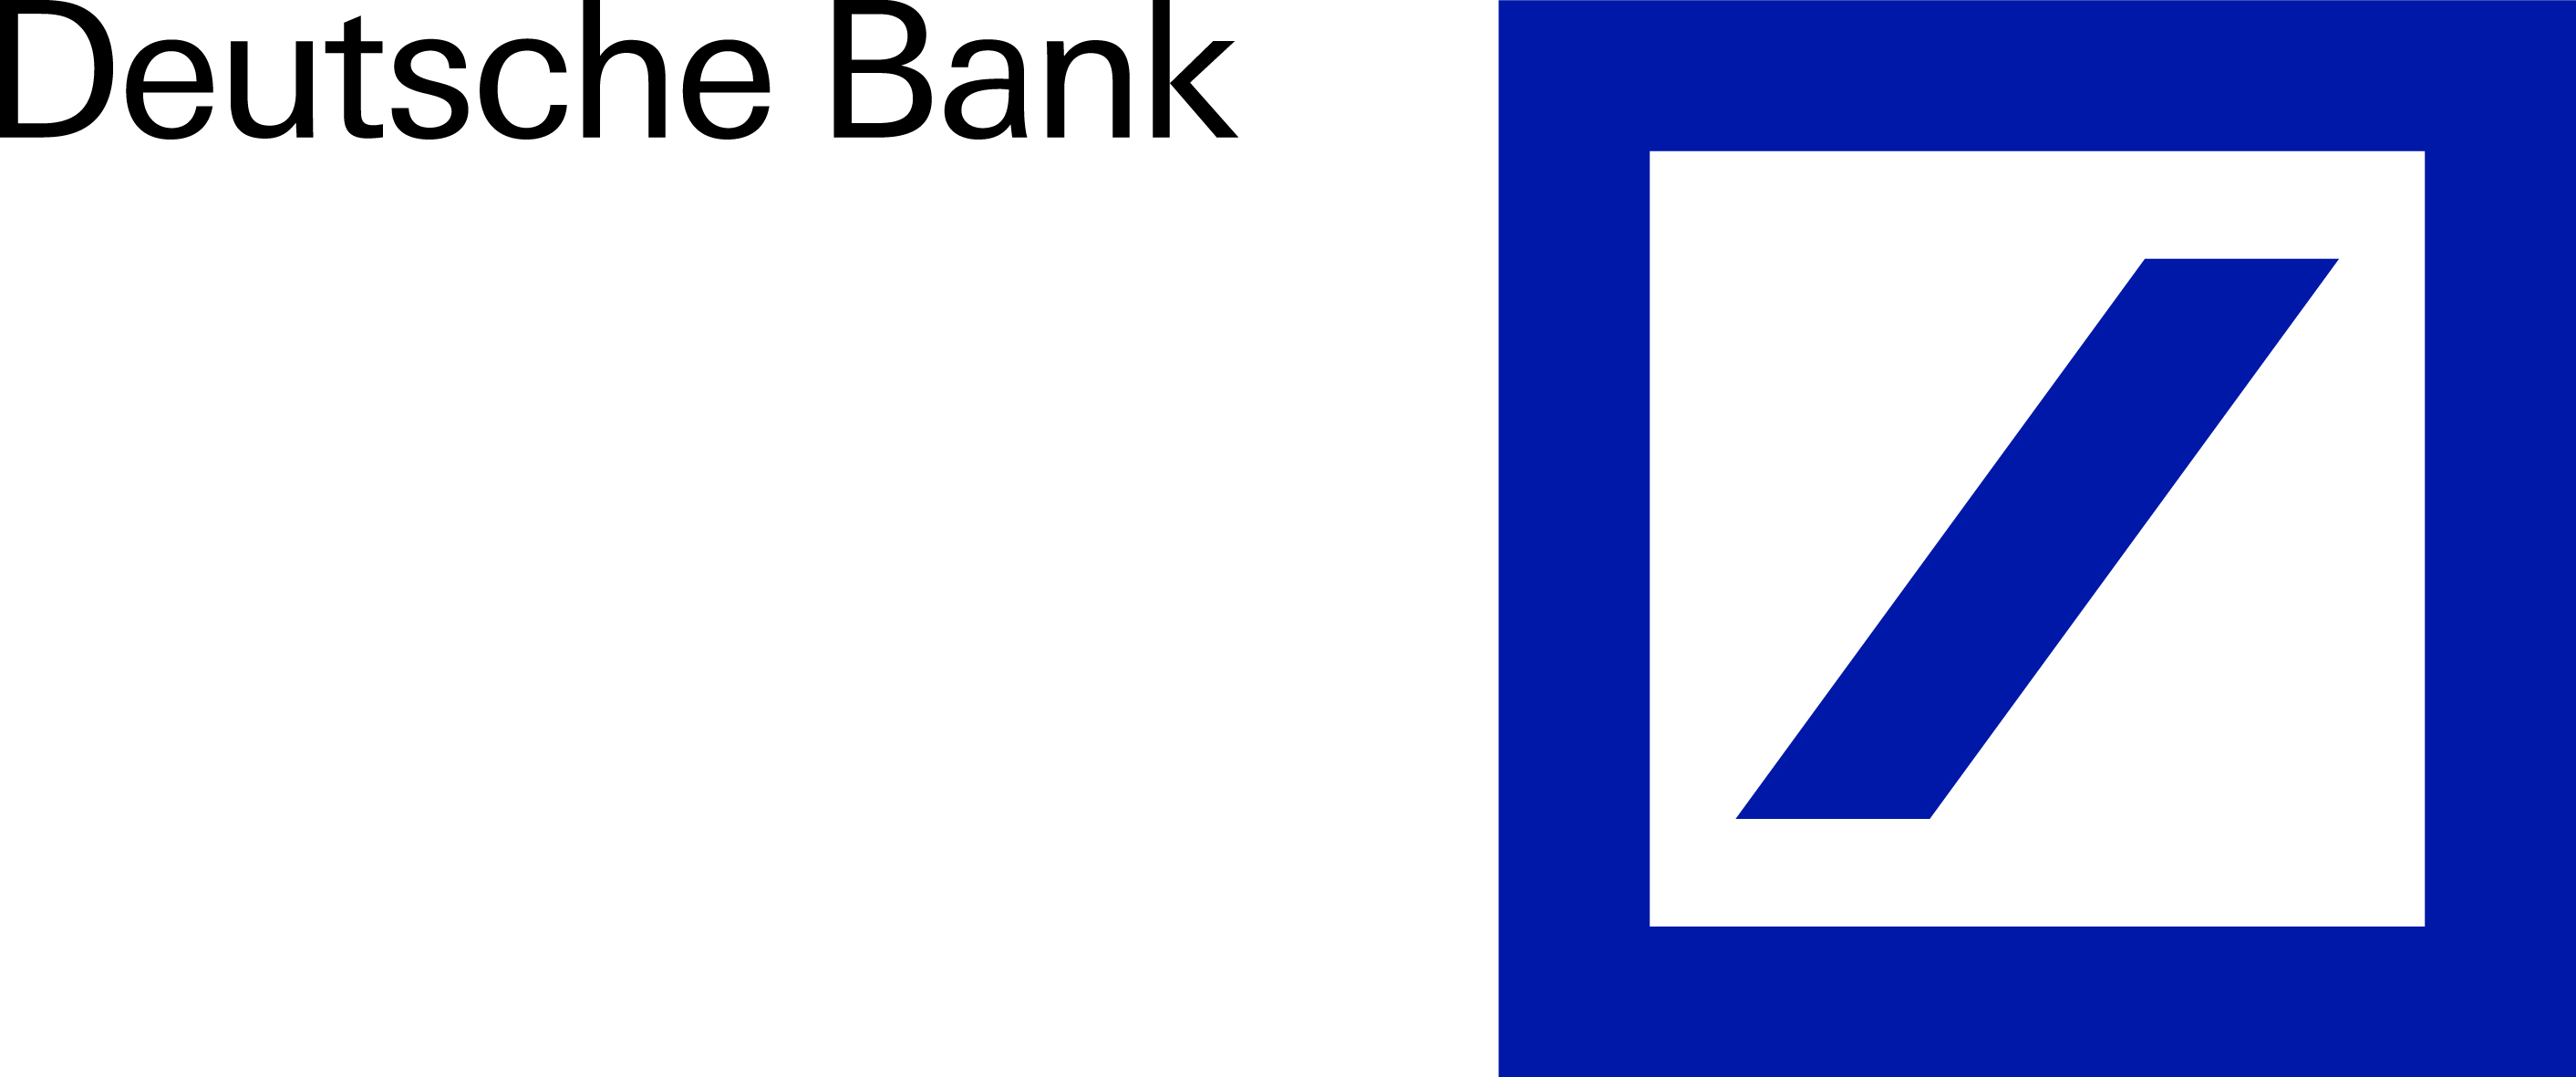 "Presented here is the ""Erscheinungsbild Deutsche Bank"